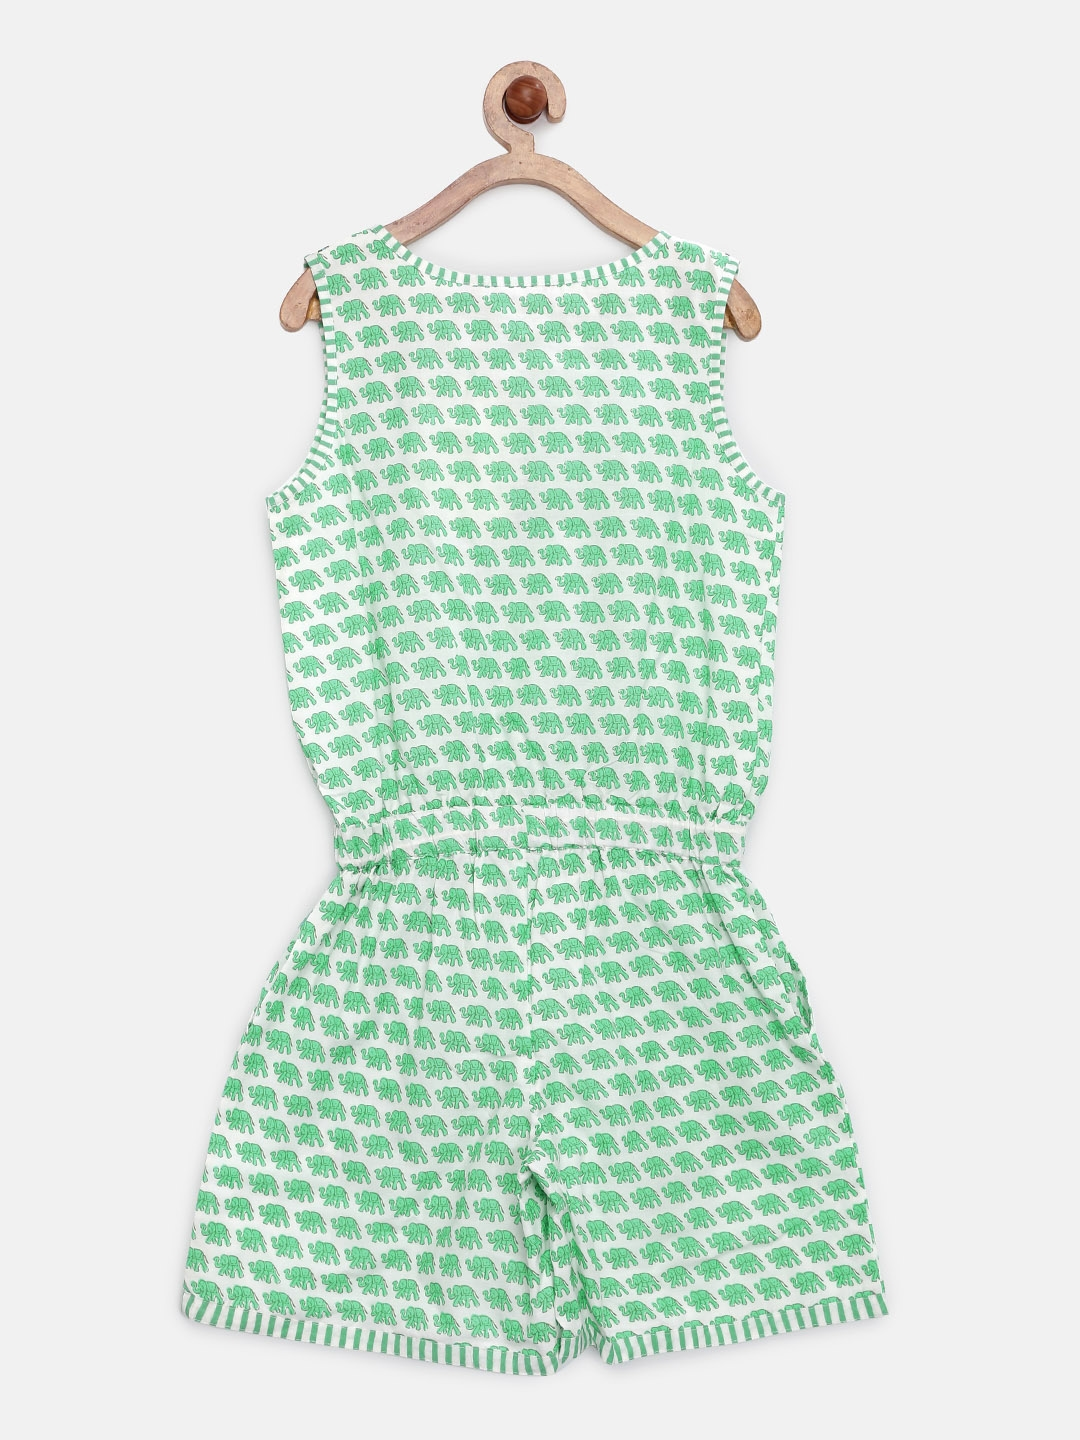 d513321fa9f Buy Biba Girls White   Green Block Print Playsuit - Jumpsuit for ...